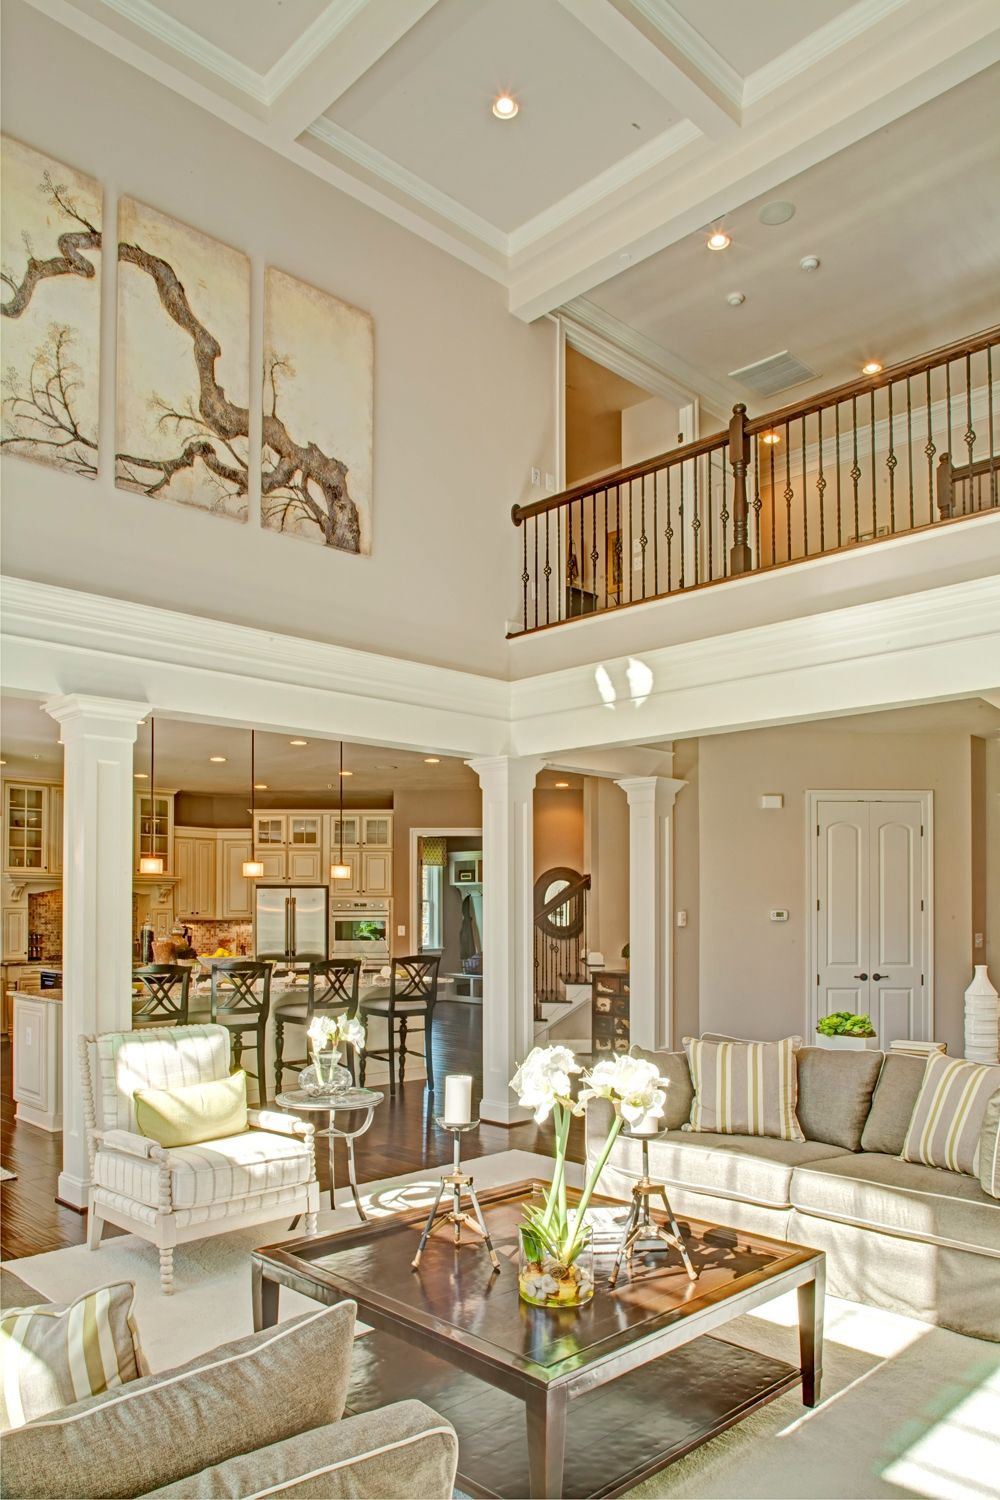 Two story fireplace design ideas bathroomfurniturezone family room decorating ideasbackgrounds also rh pinterest